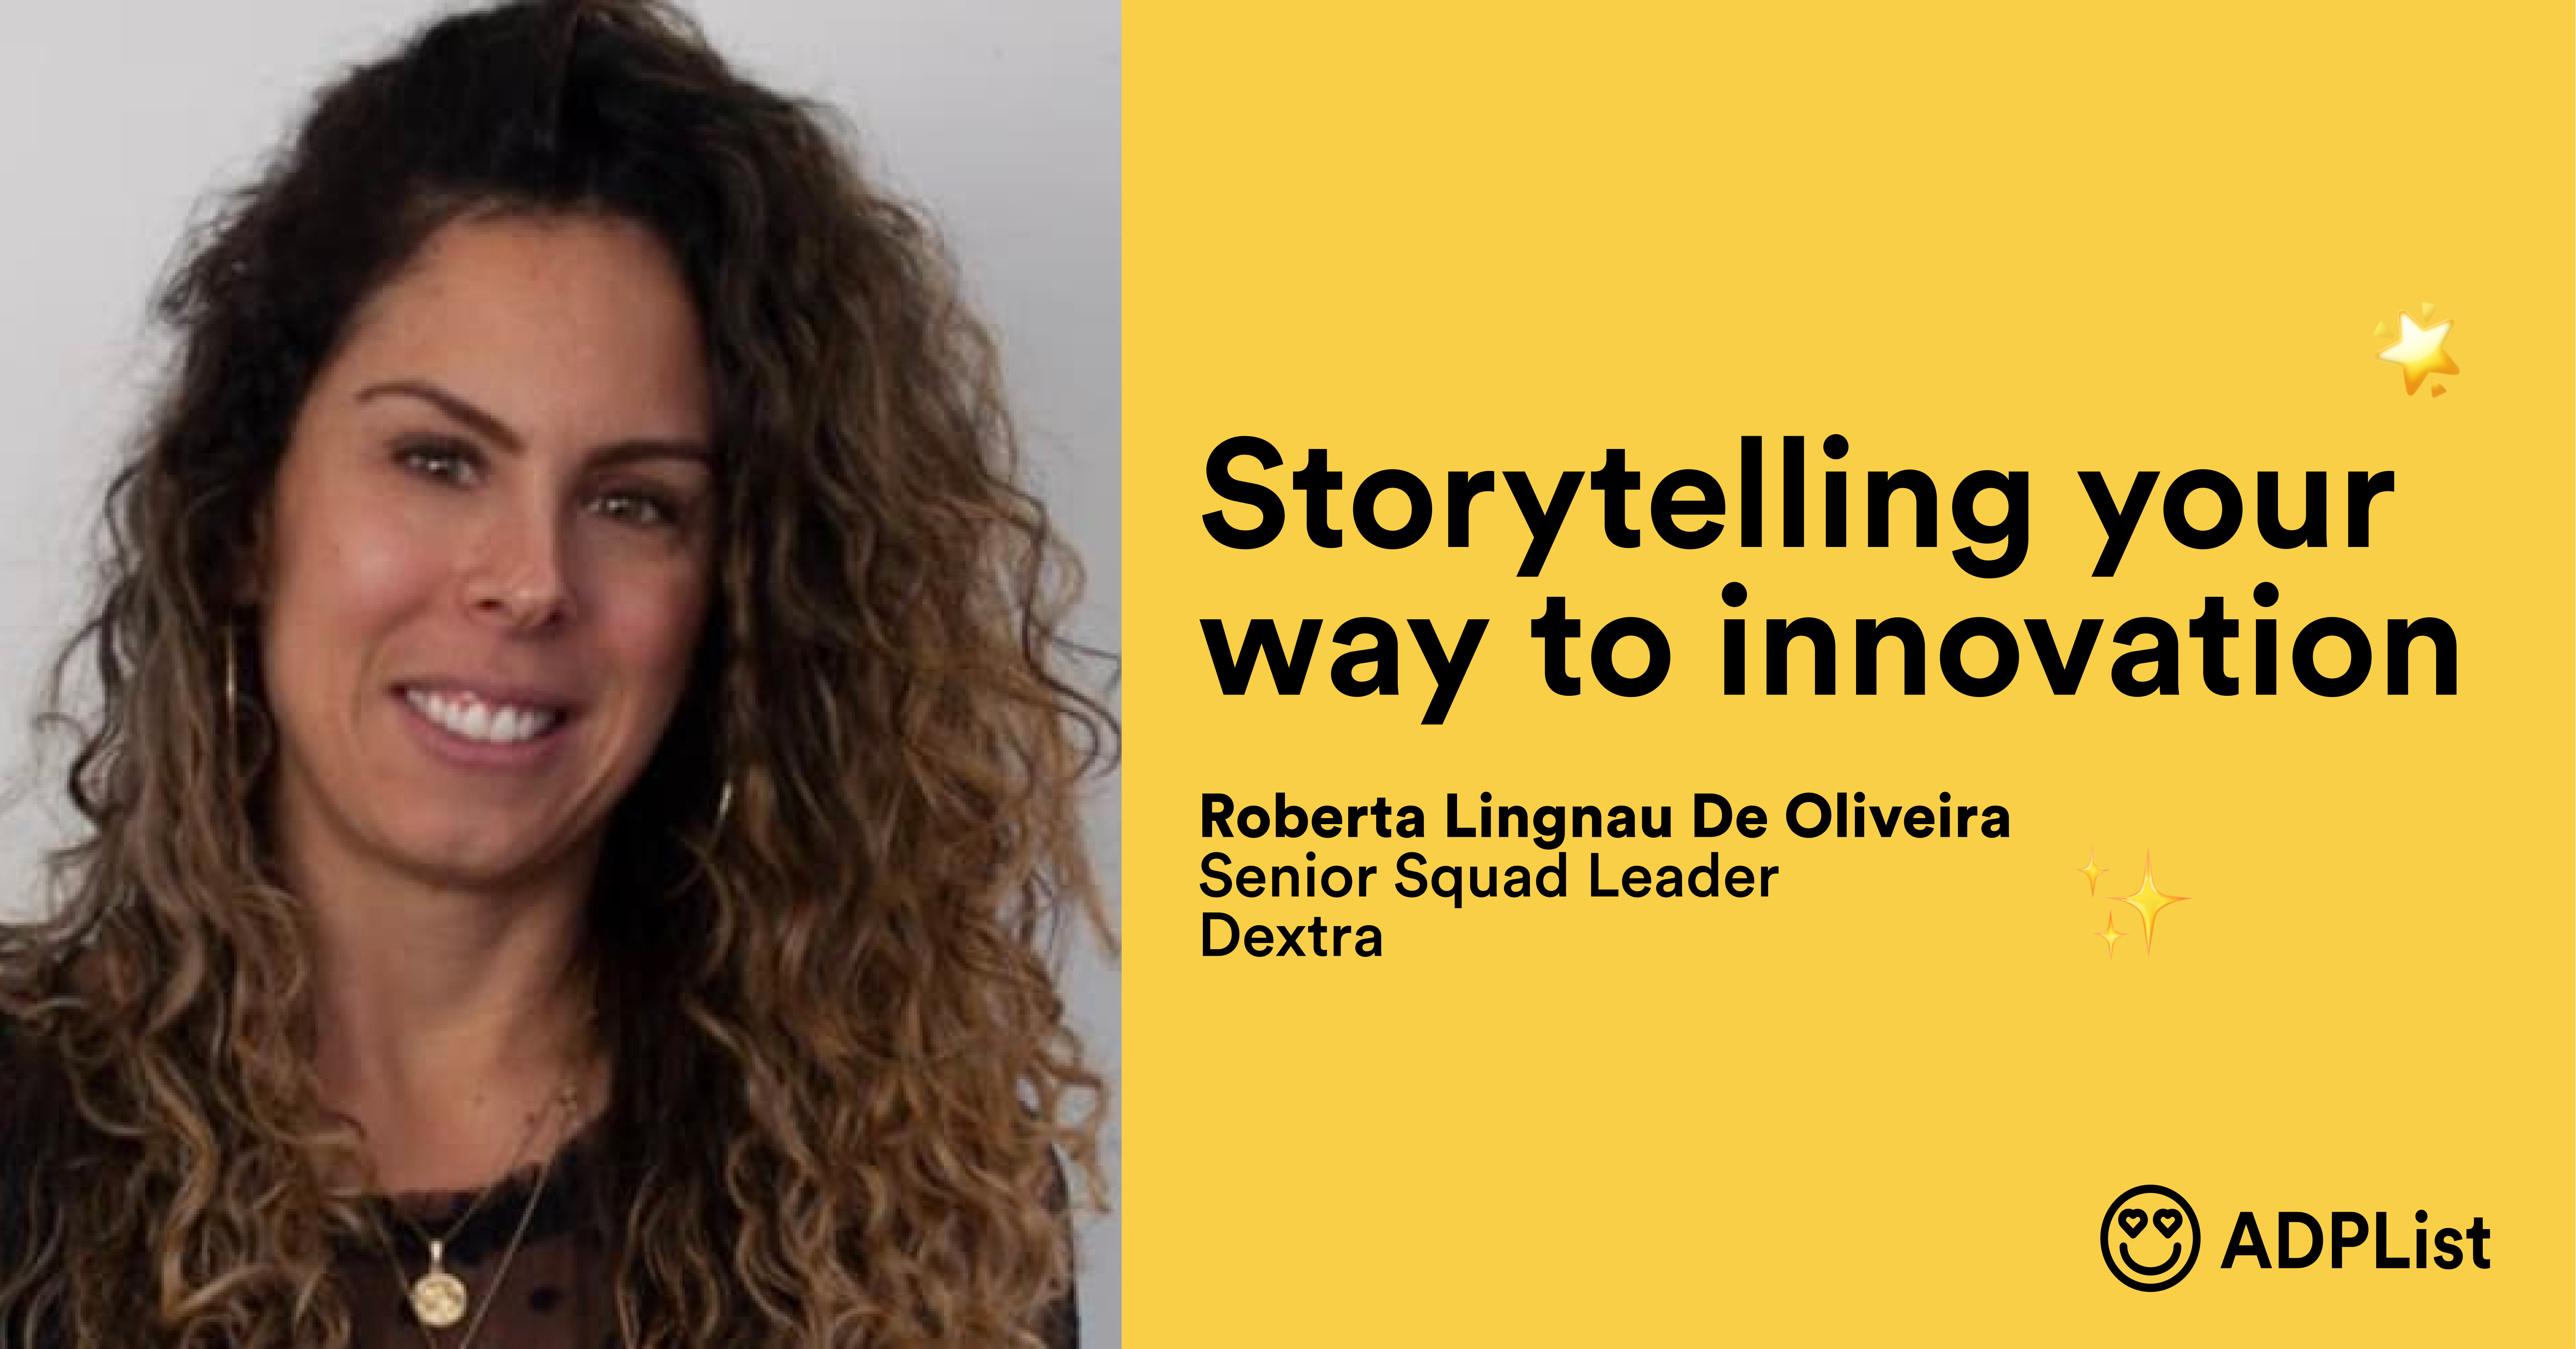 Storytelling your way to innovation